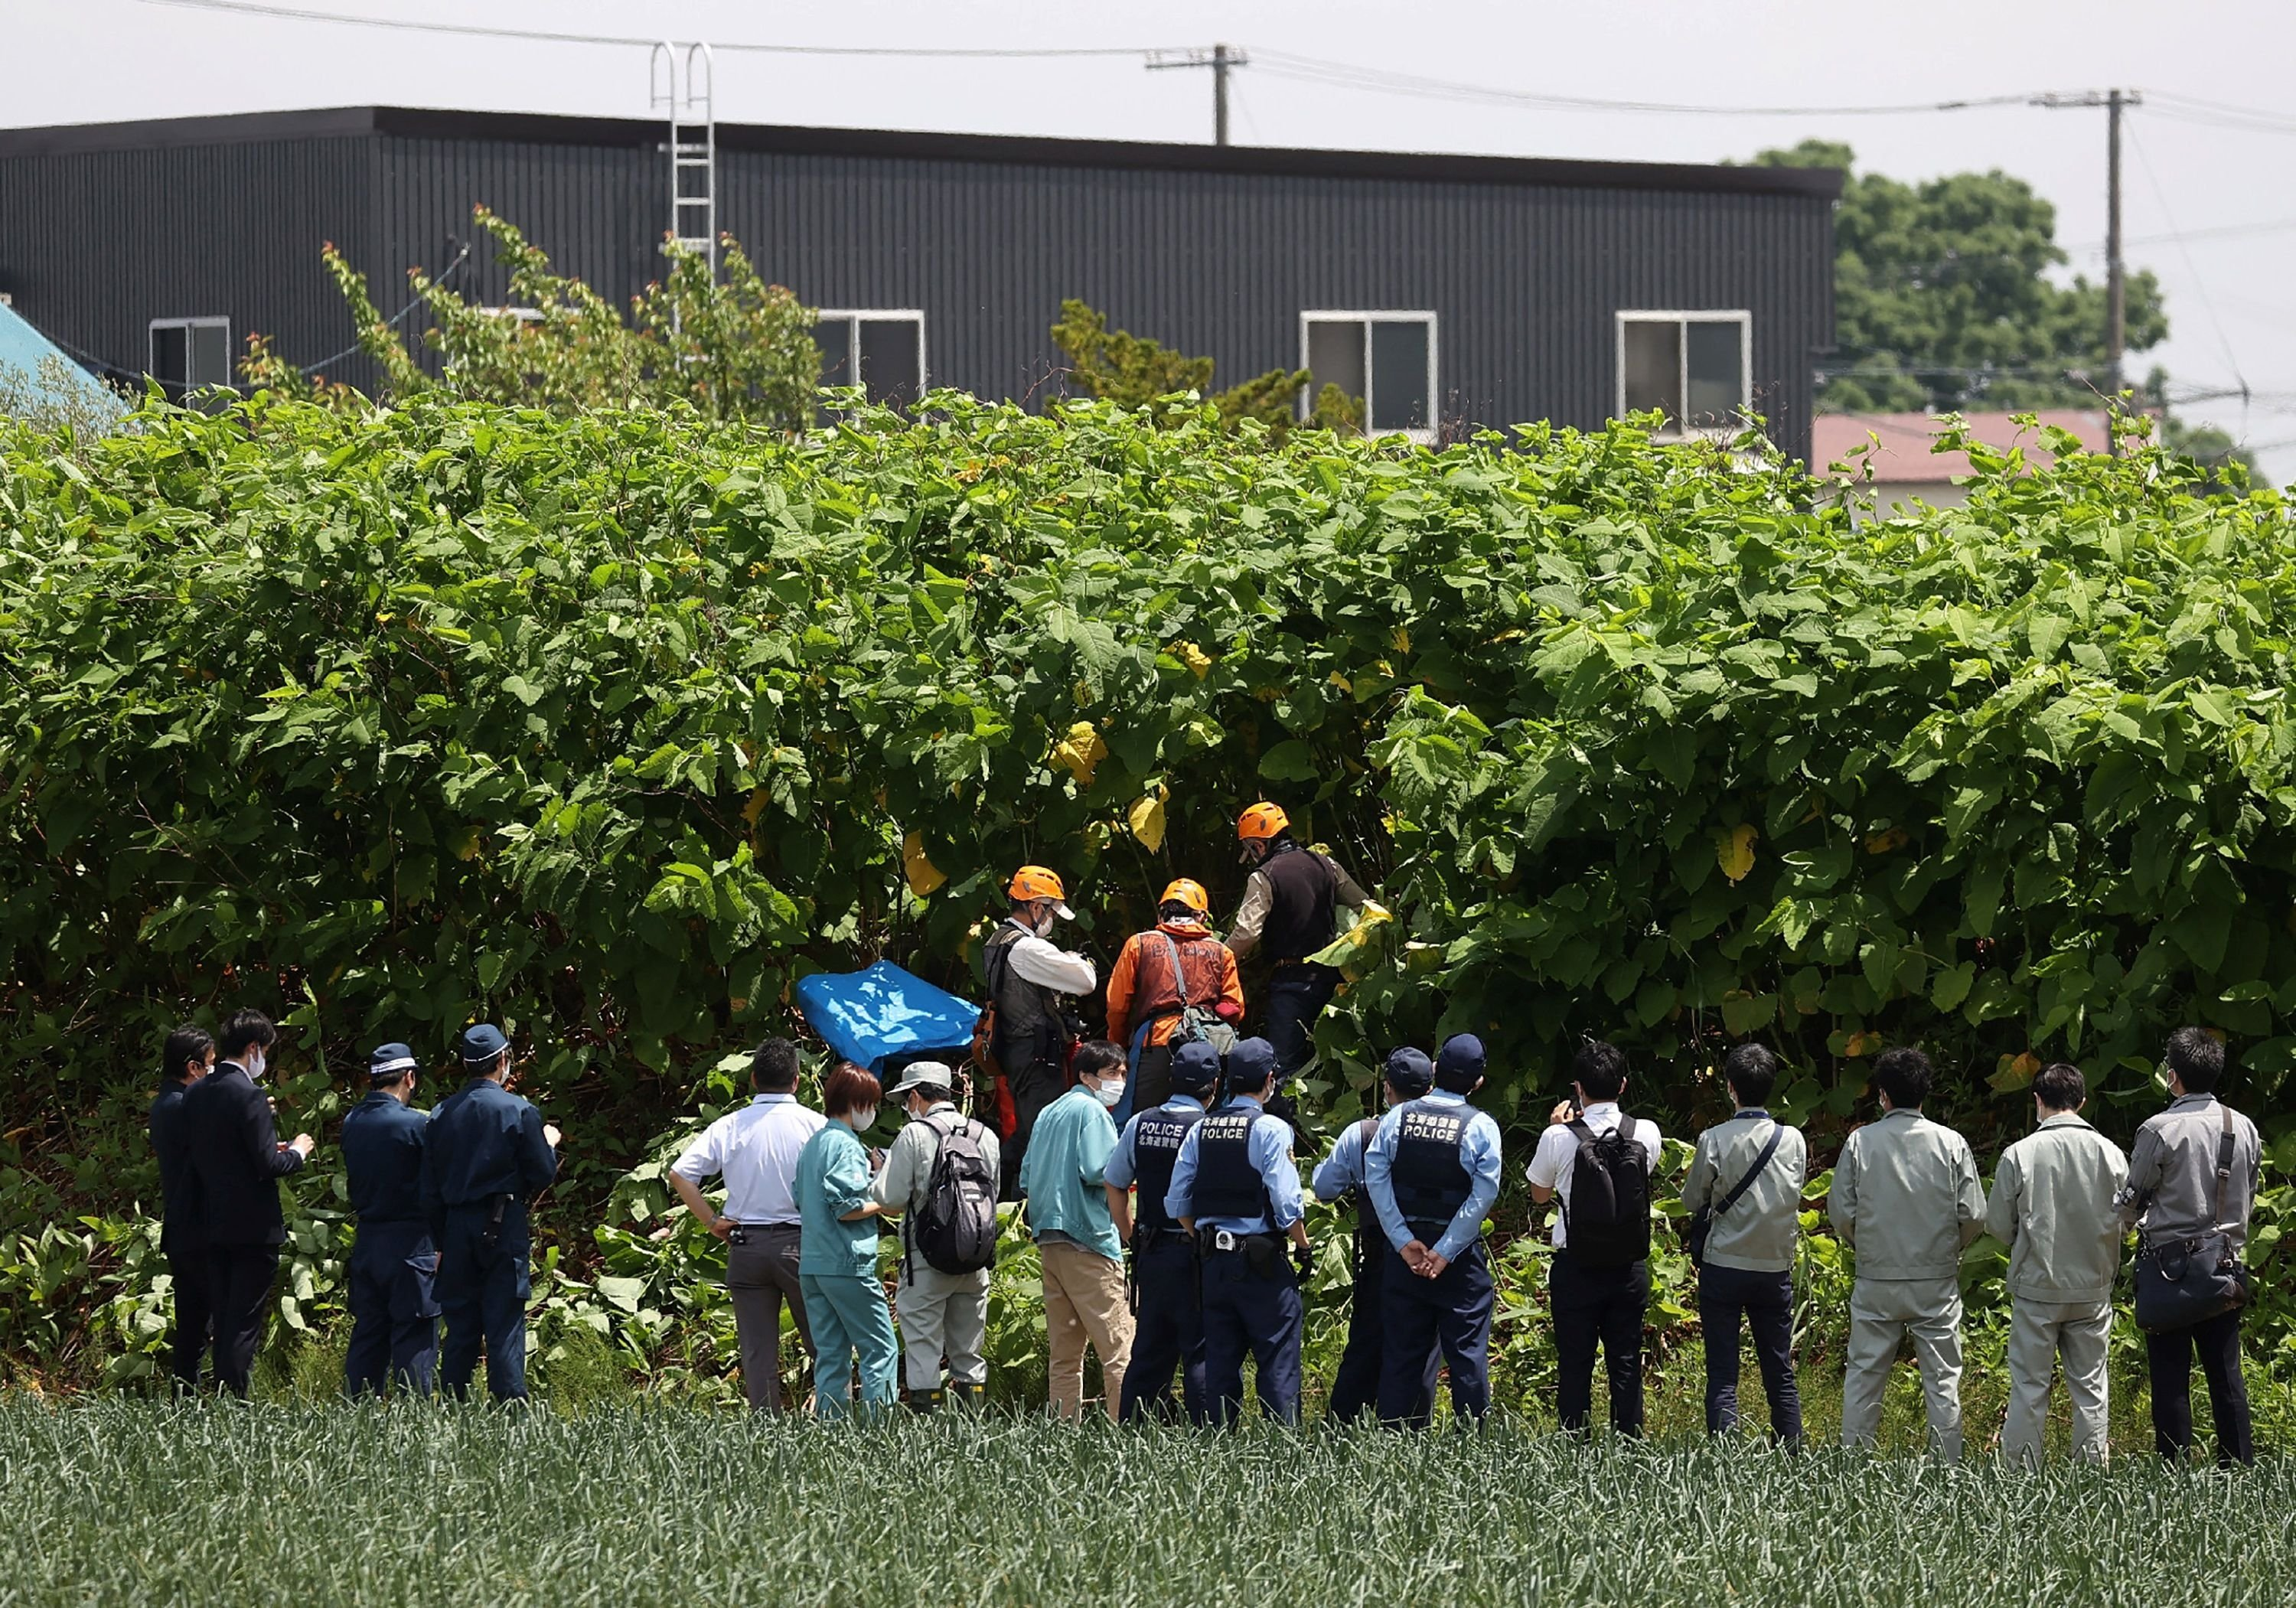 Police officers and members of a hunting group search for a brown bear that is on the loose in Sapporo, Hokkaido prefecture, Japan, June 18, 2021. (AFP Photo)